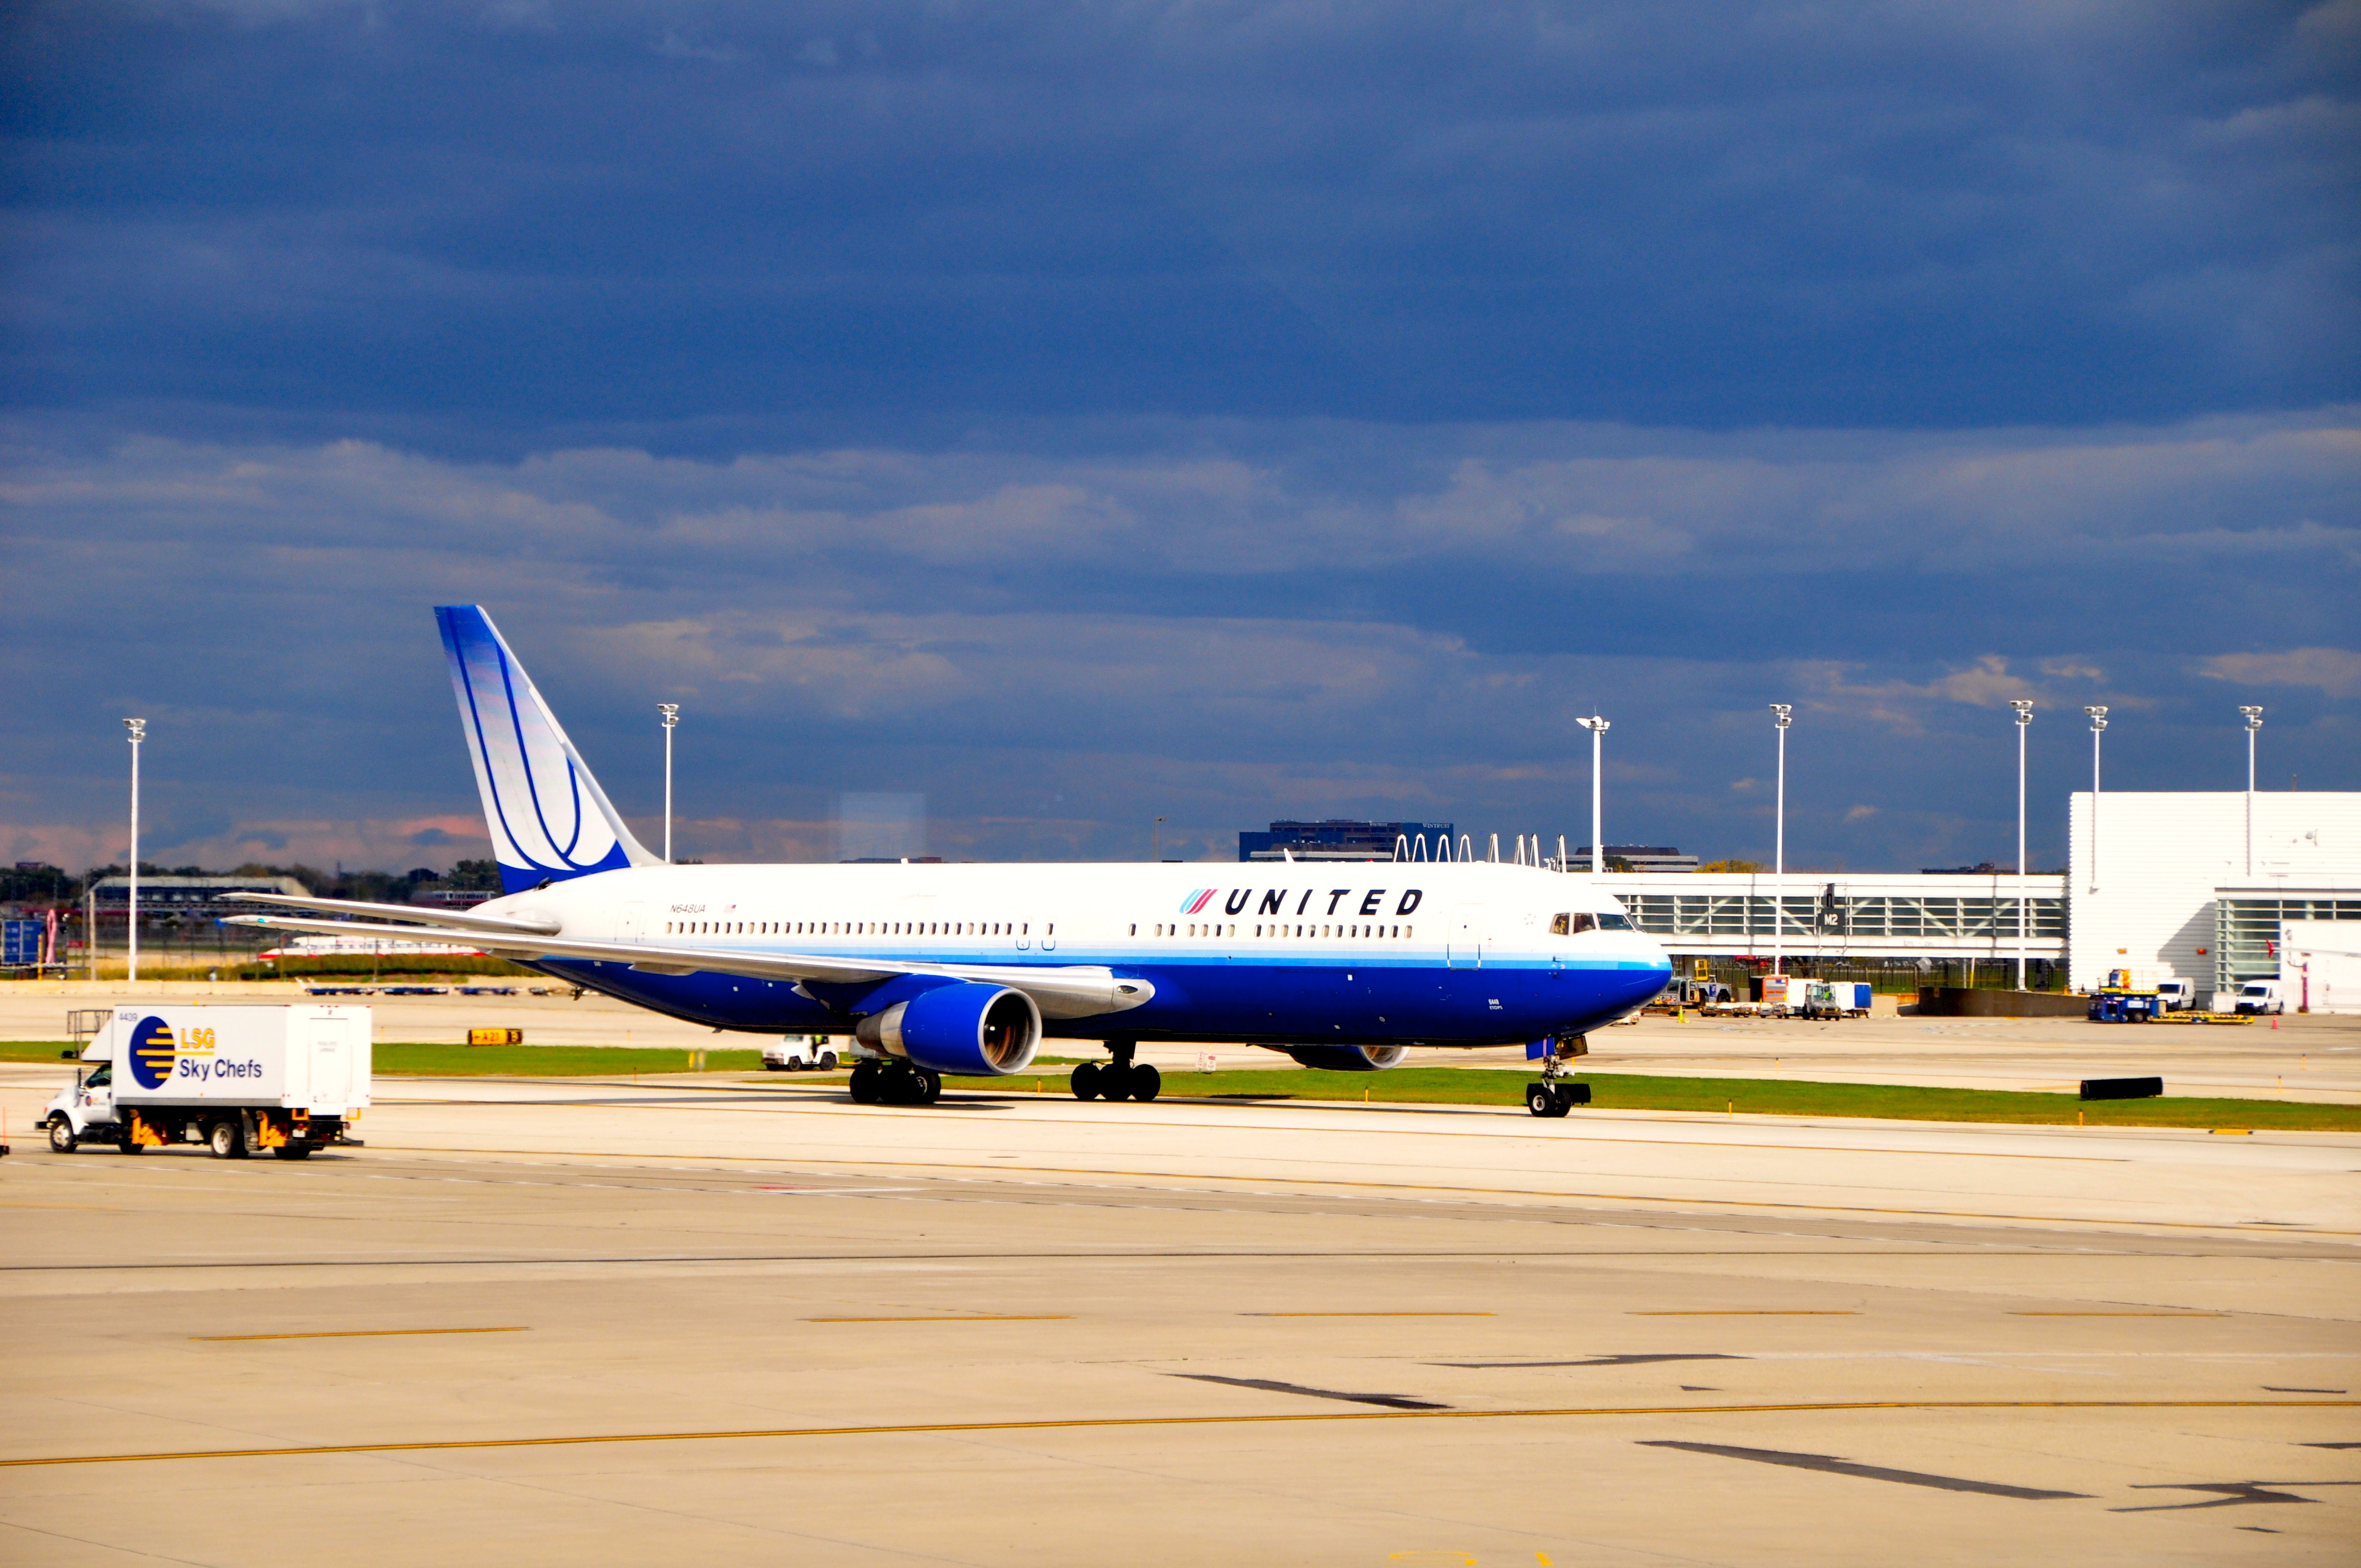 A United Airlines 767